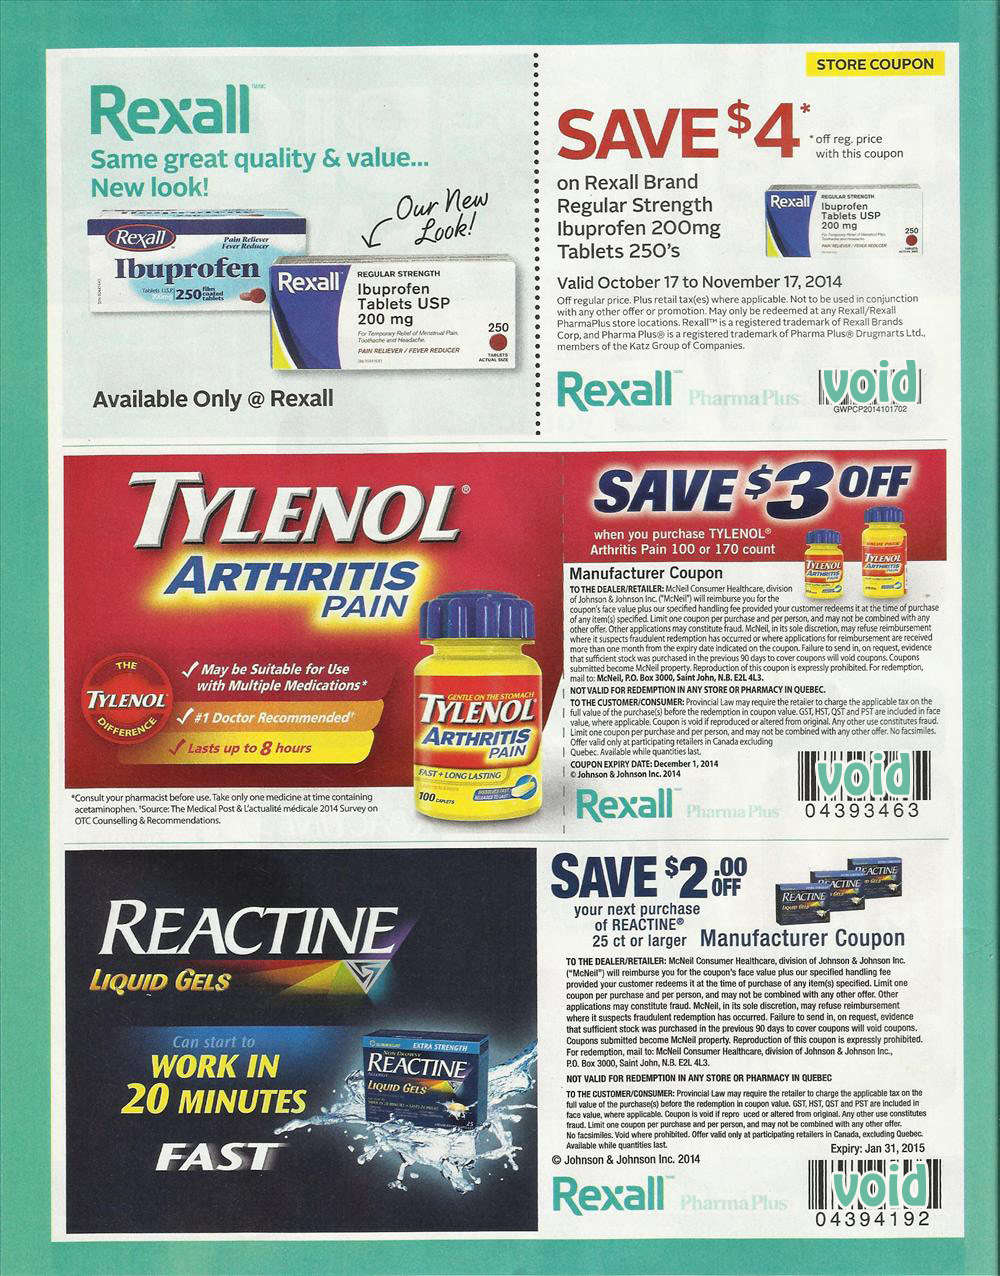 how to get manufacturer coupons in the mail